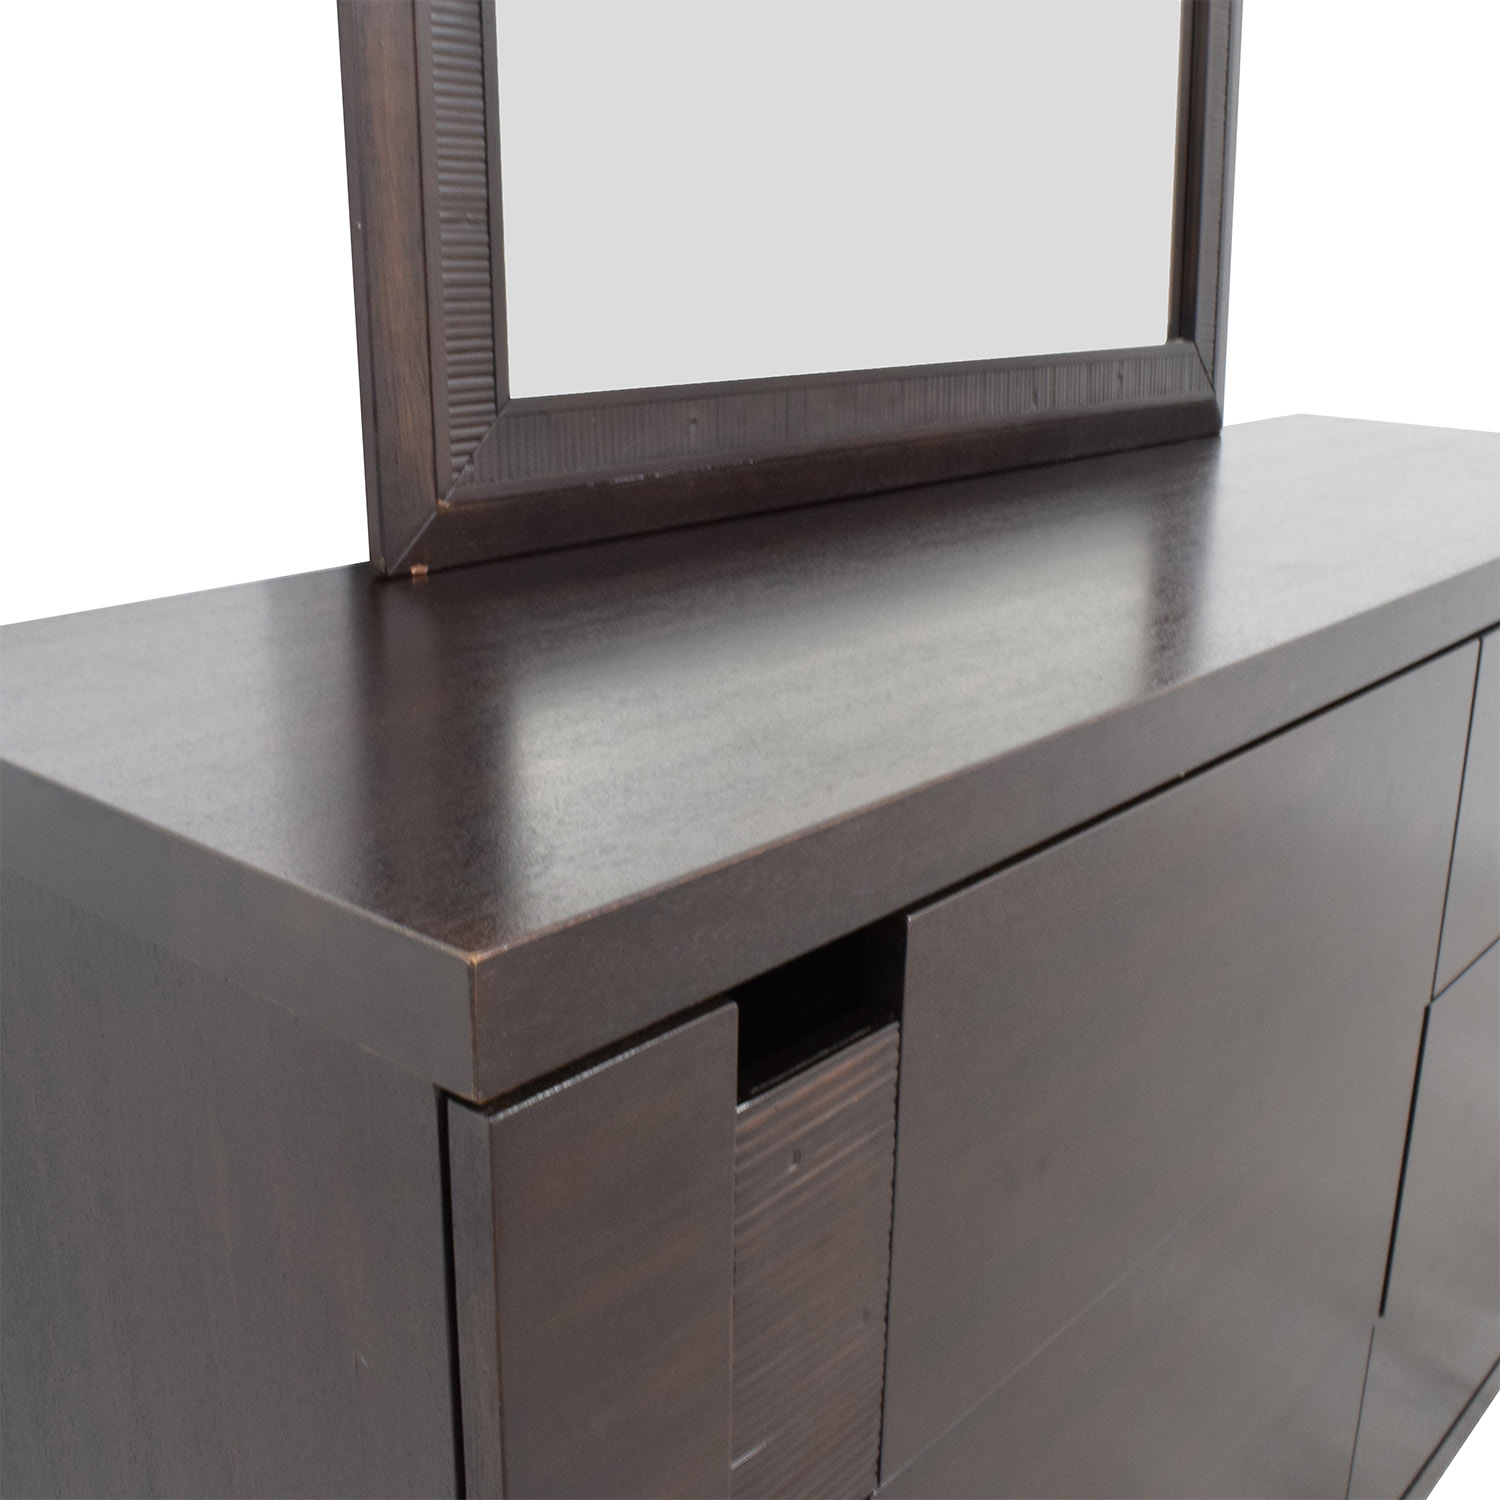 The Door Store The Door Store Dark Brown Wooden Six-Drawer Dresser with Mirror on sale